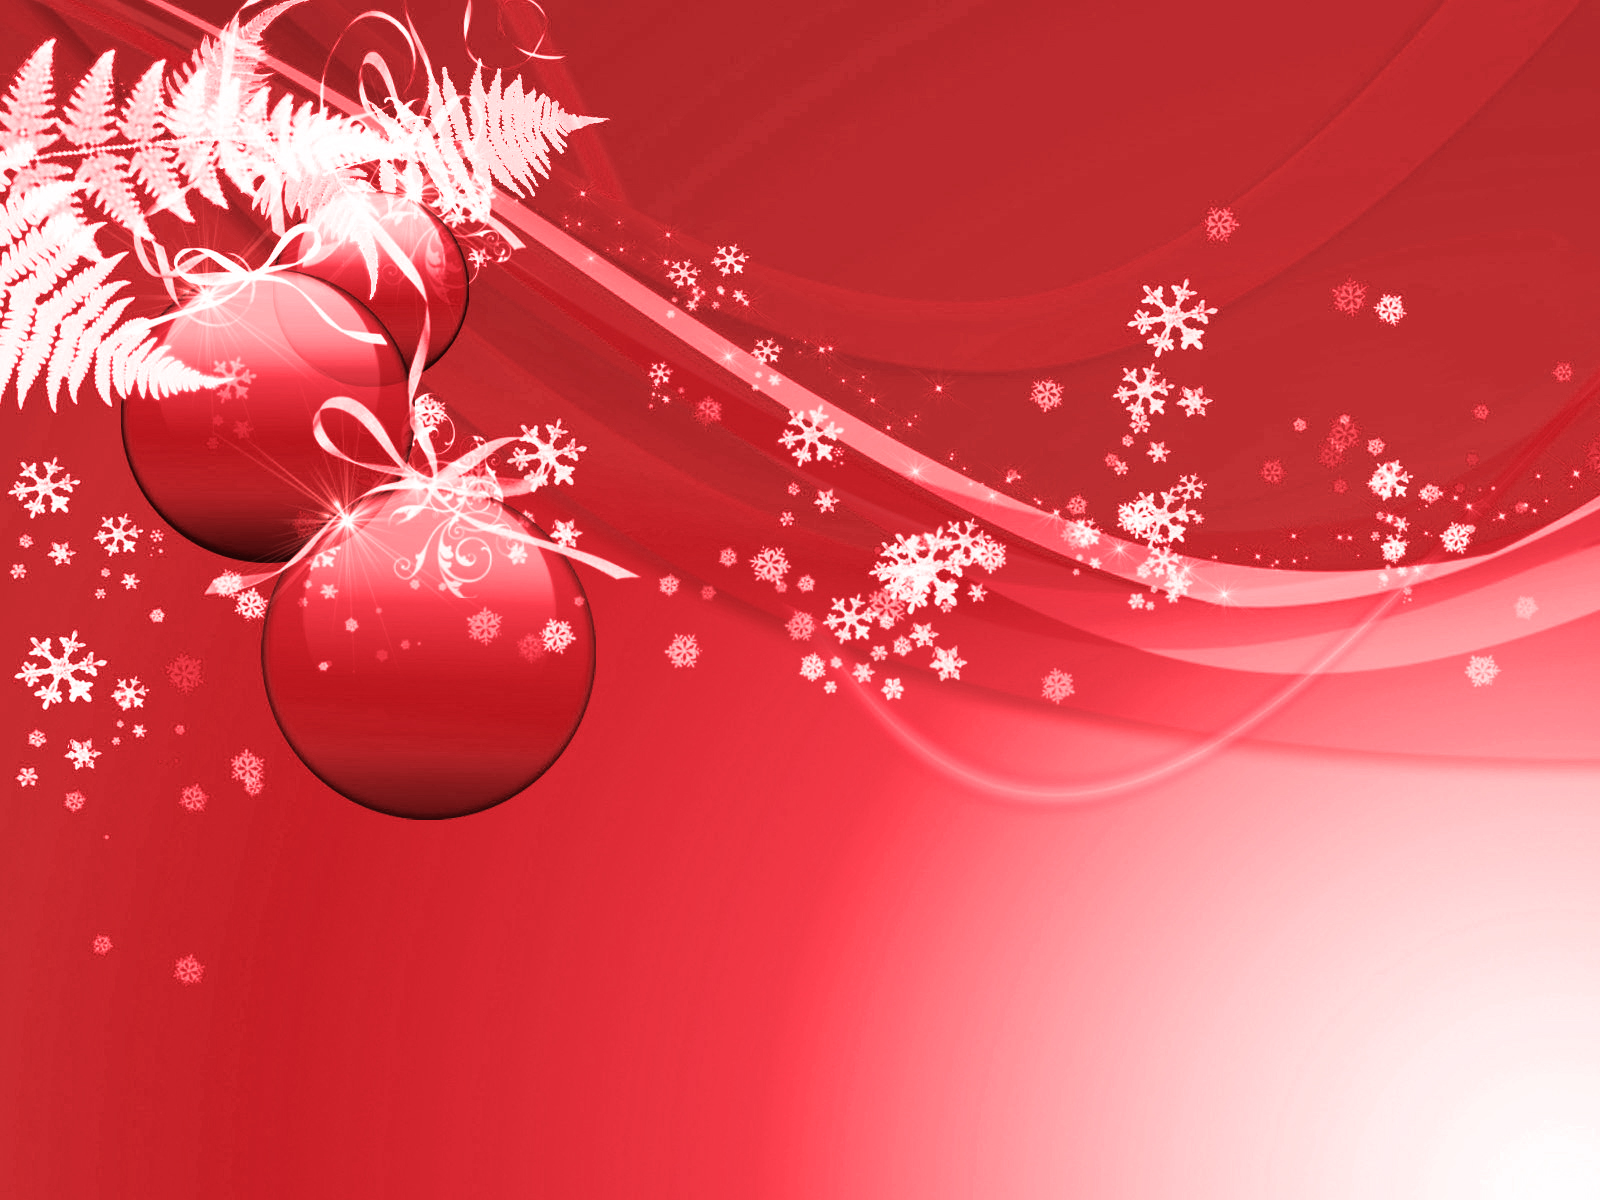 Free Download Christmas Backgrounds For Photoshop